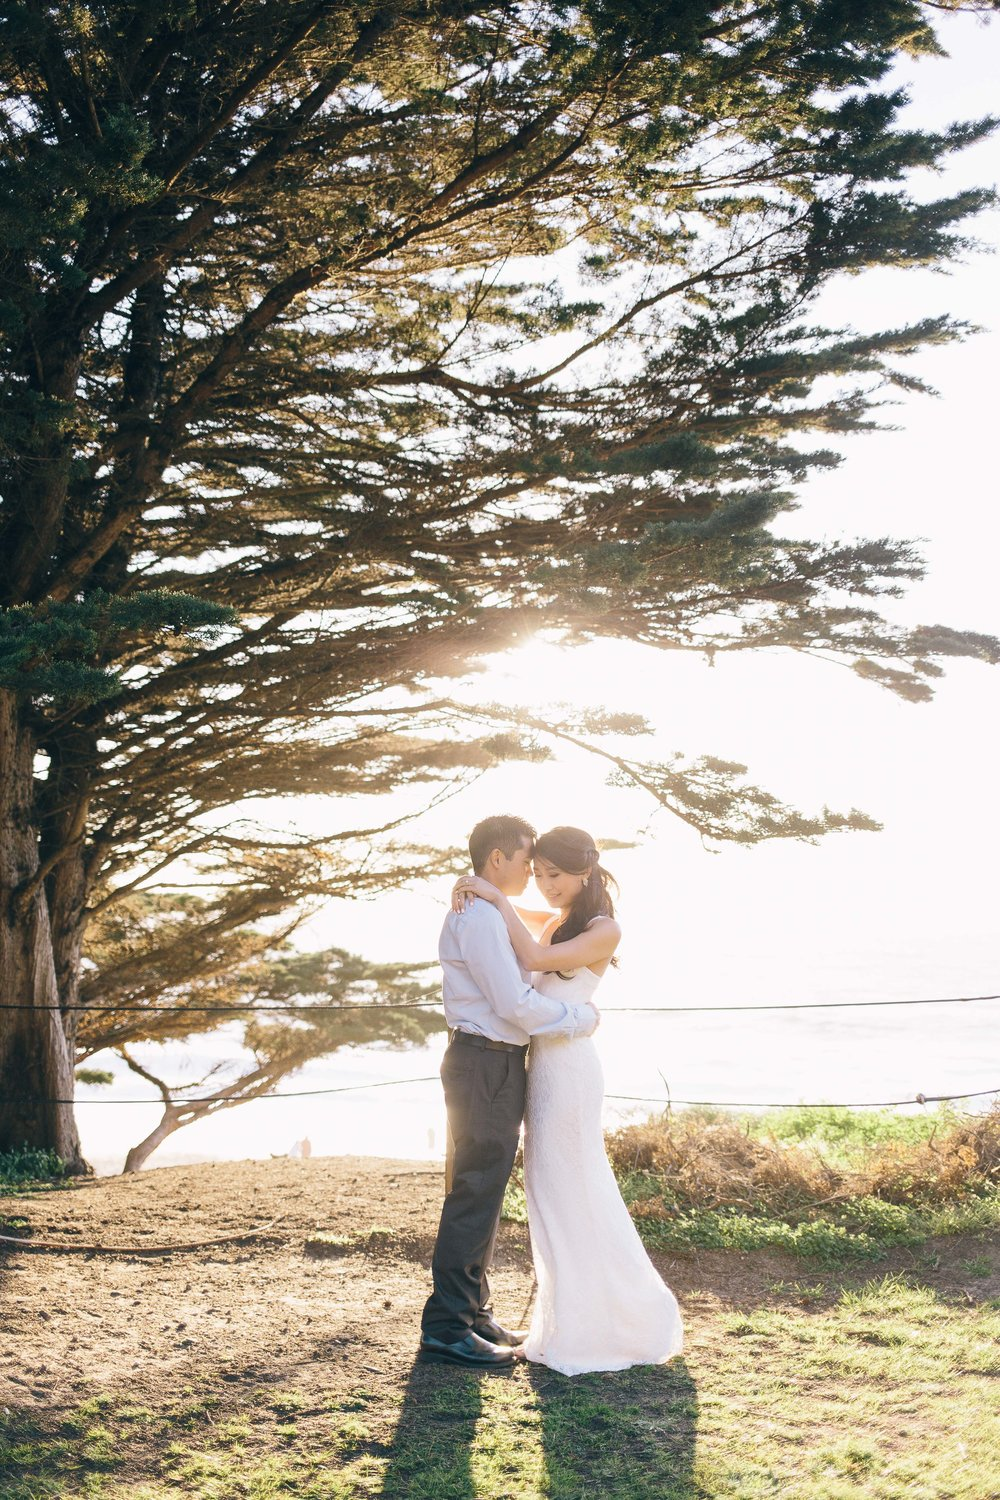 Best Engagement Photo Locations in San Francisco - Baker Beach Engagement Photos by JBJ Pictures (13).jpg